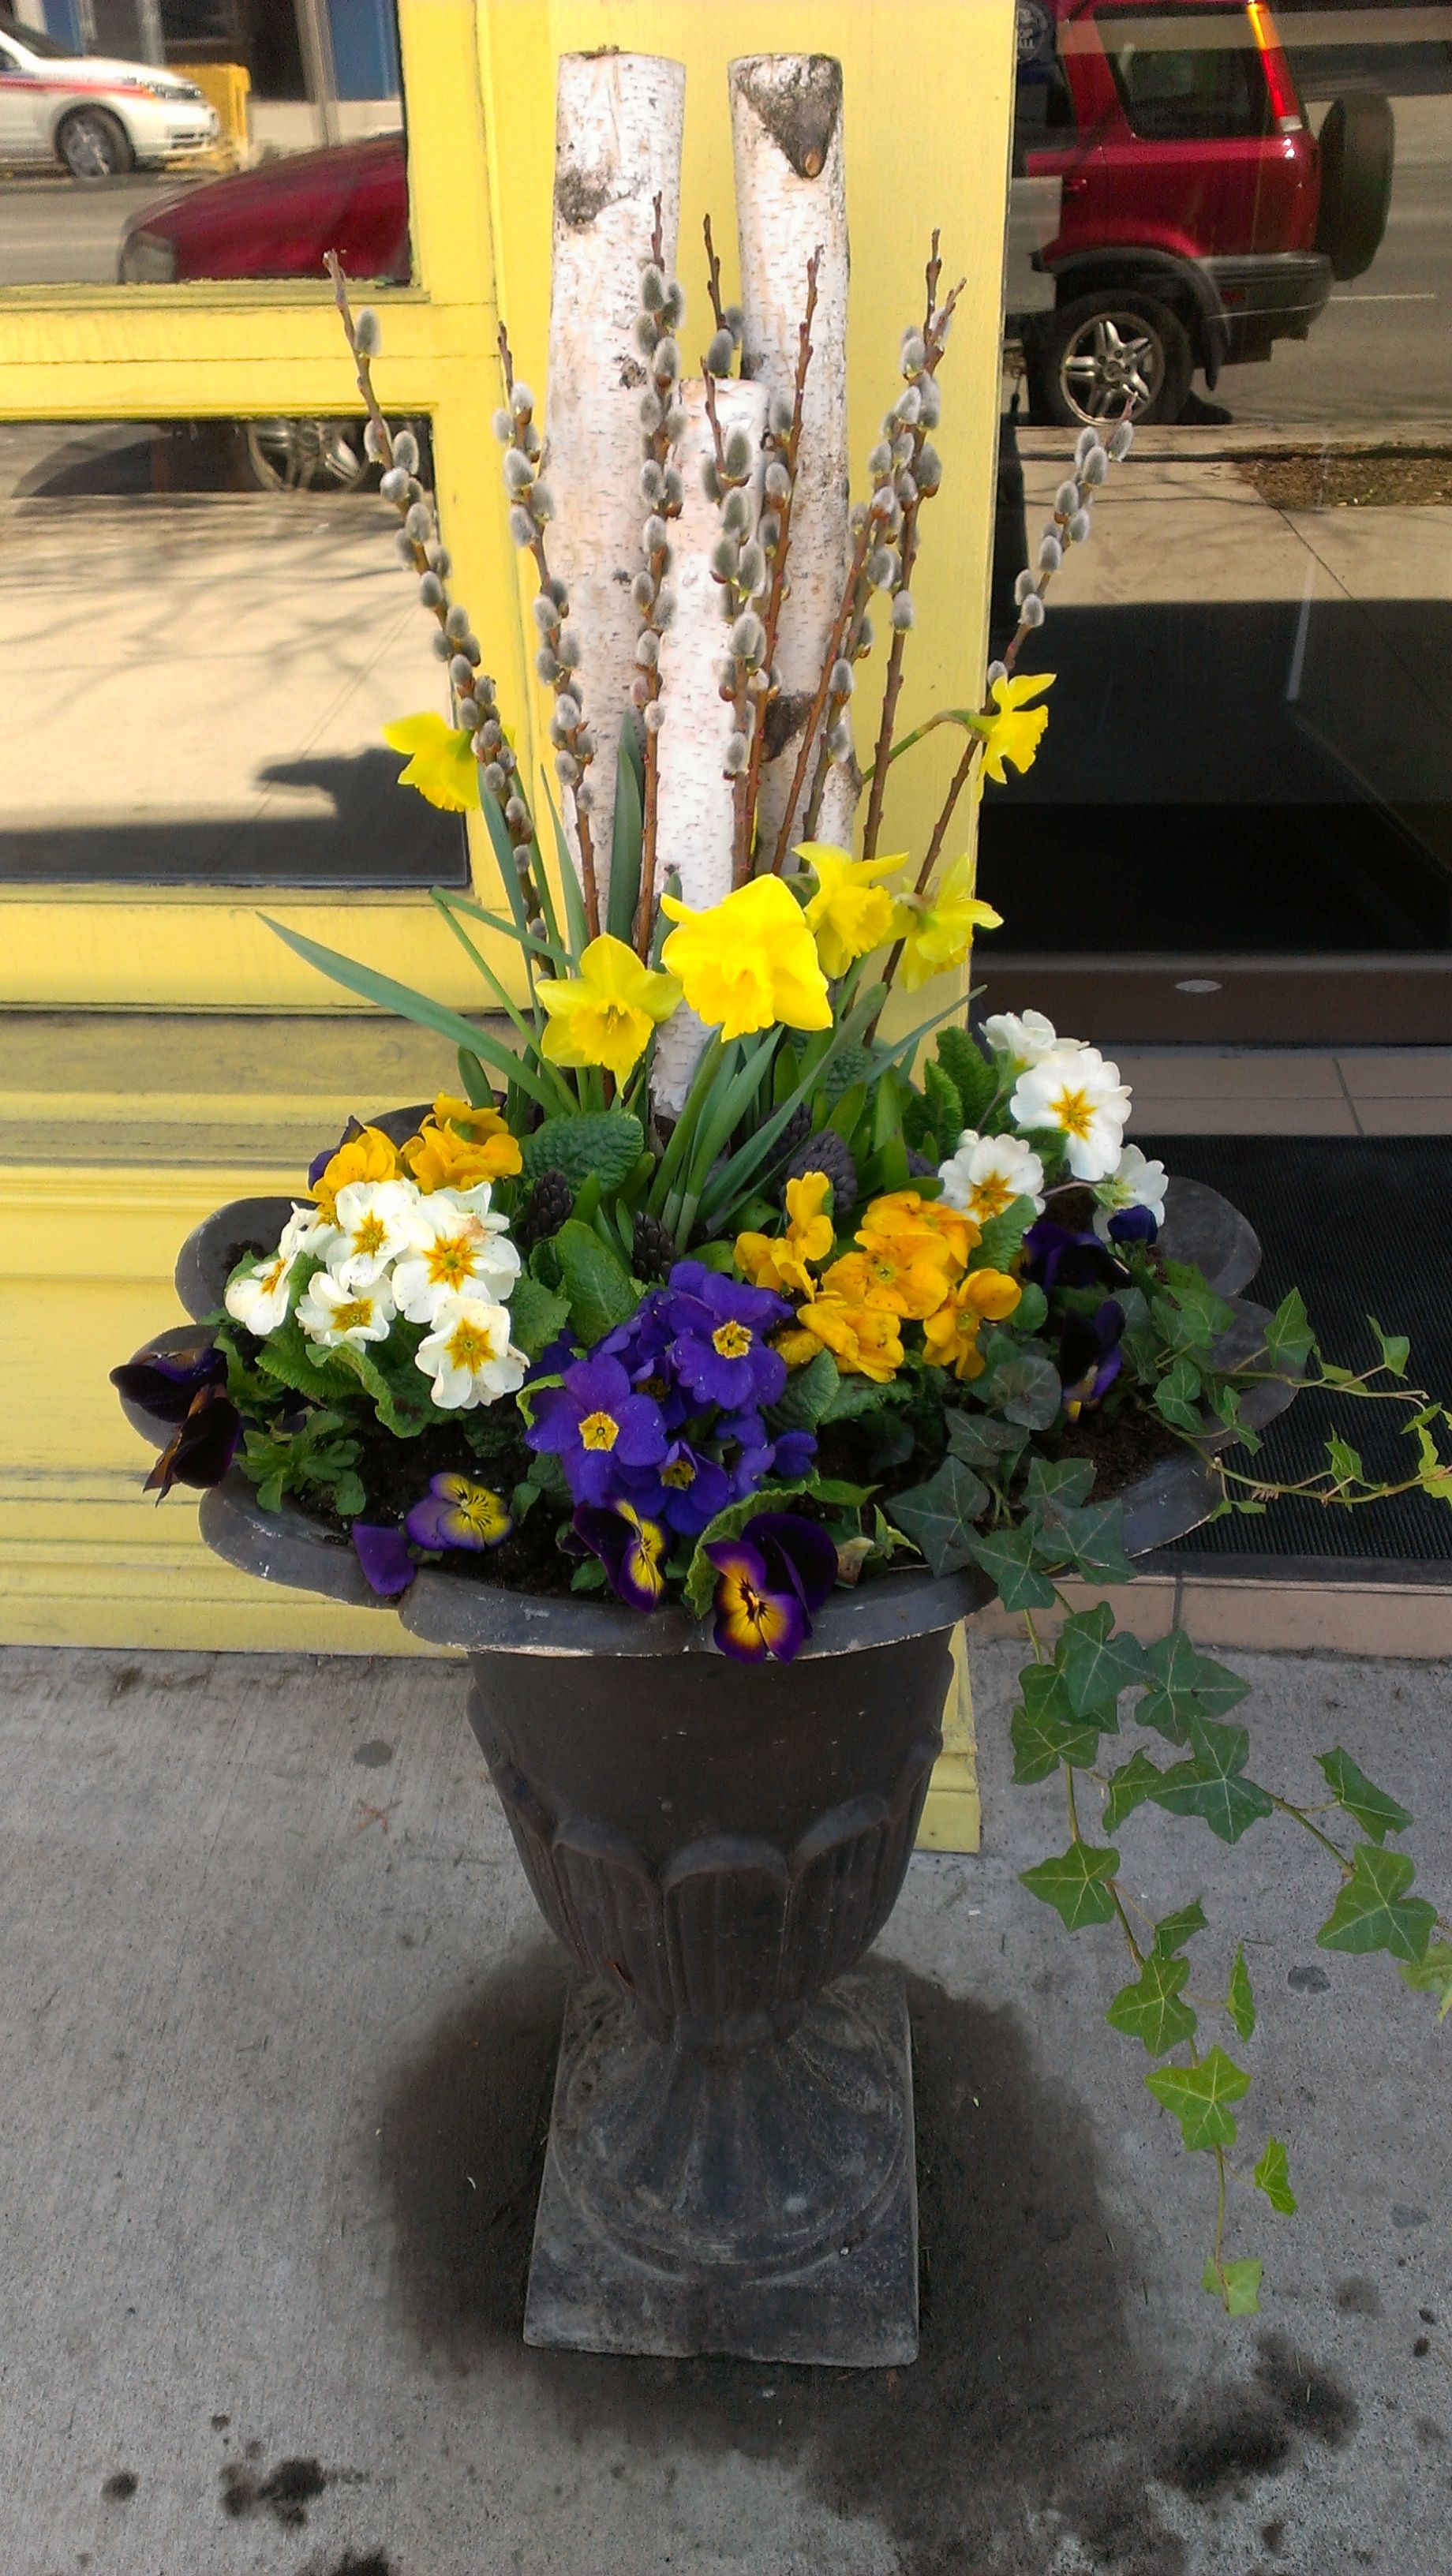 Urn Decorations For Spring Spring Urn At Tabule Restaurant Yonge Stlocationdesigned